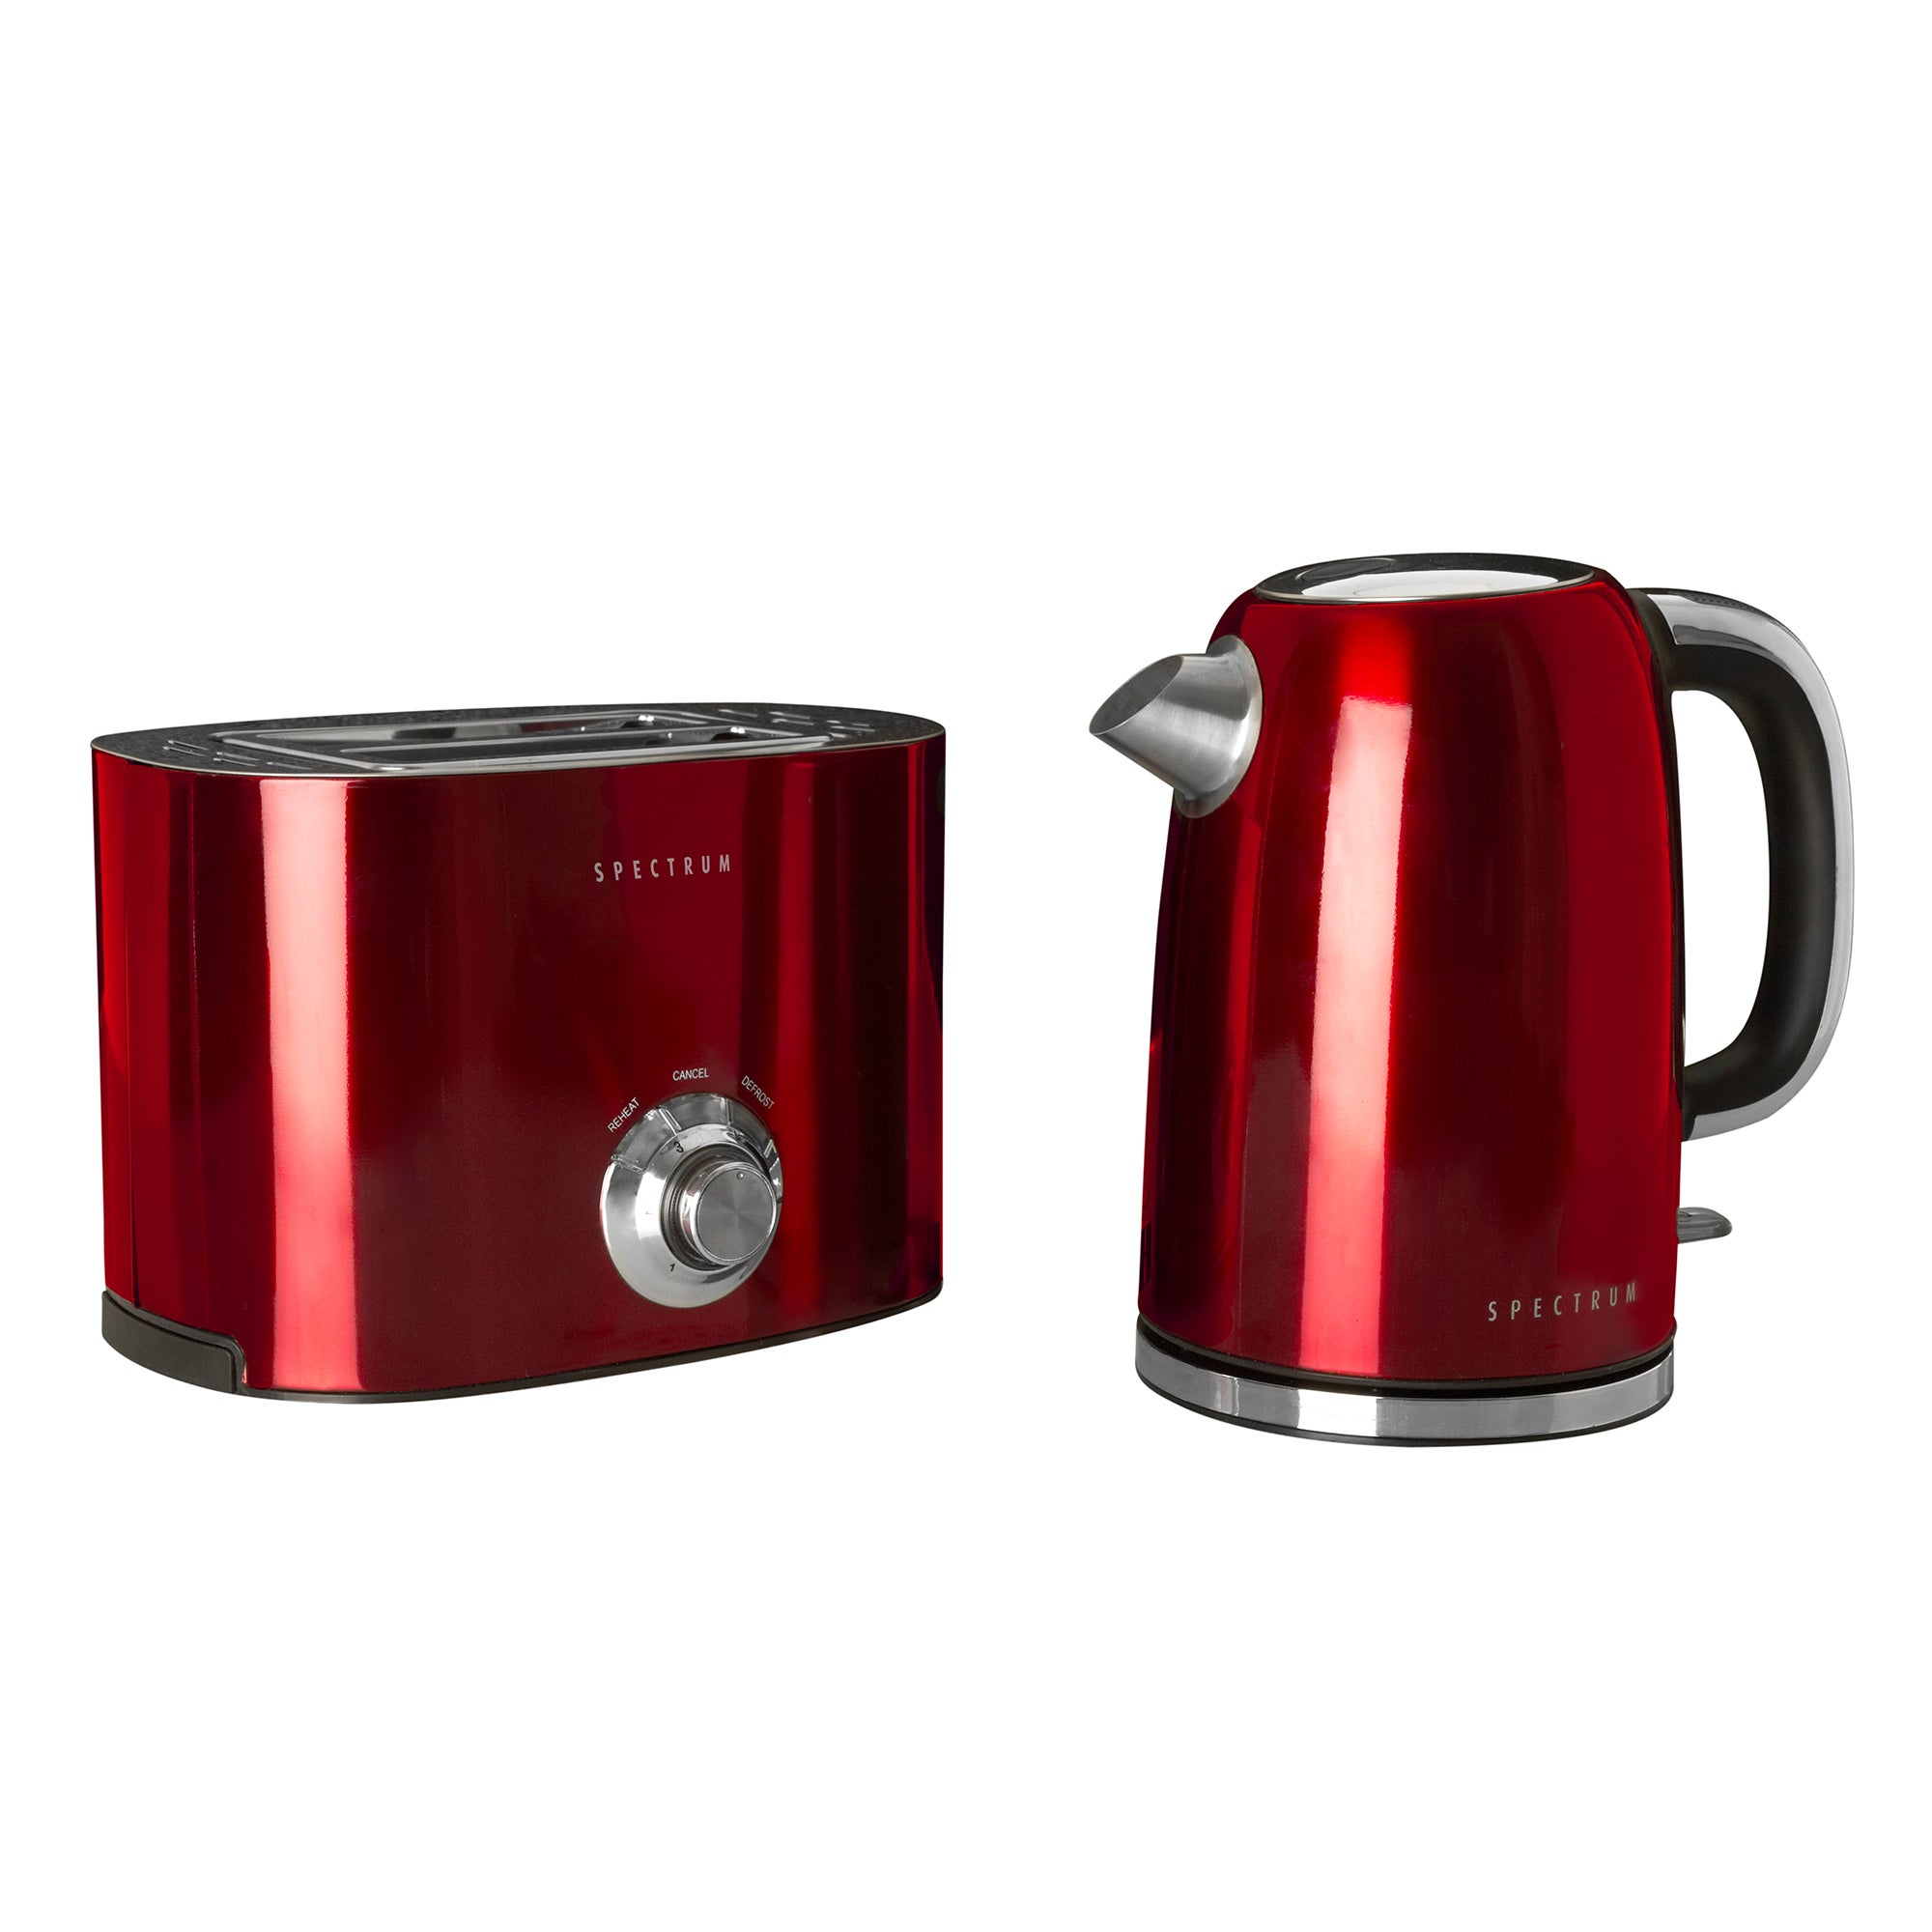 Spectrum Red Kettle and Toaster Set Red